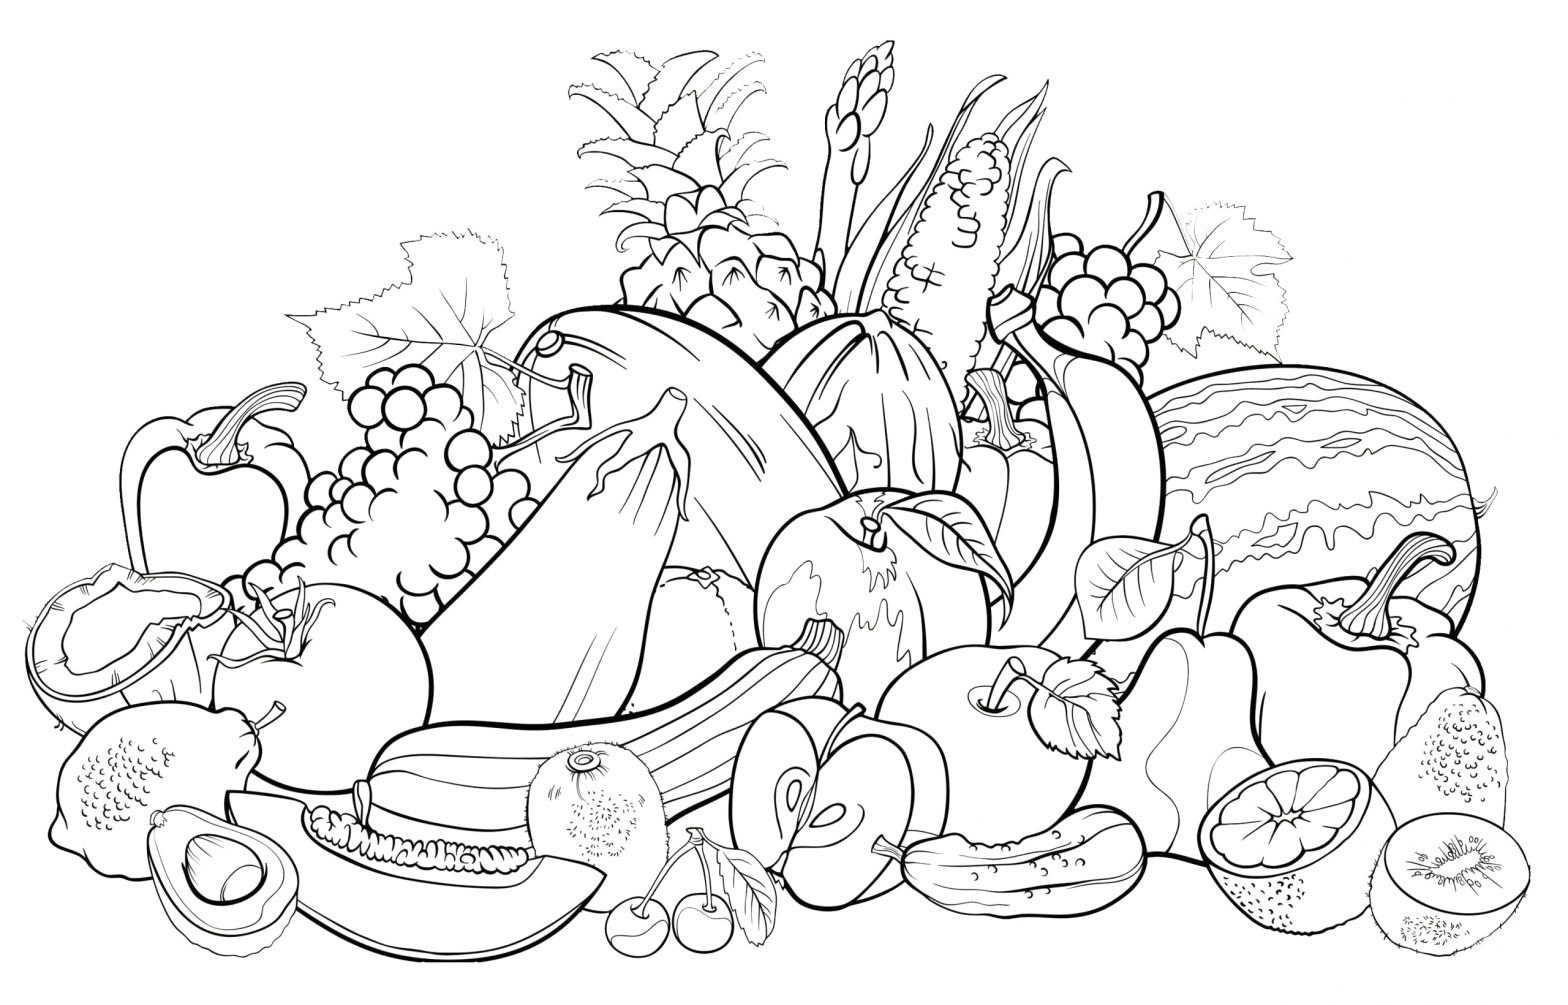 Coloring Pages for Kids Fruits and Vegetables Coloring Pages Fruits and Ve Ables Elegant All Fruits